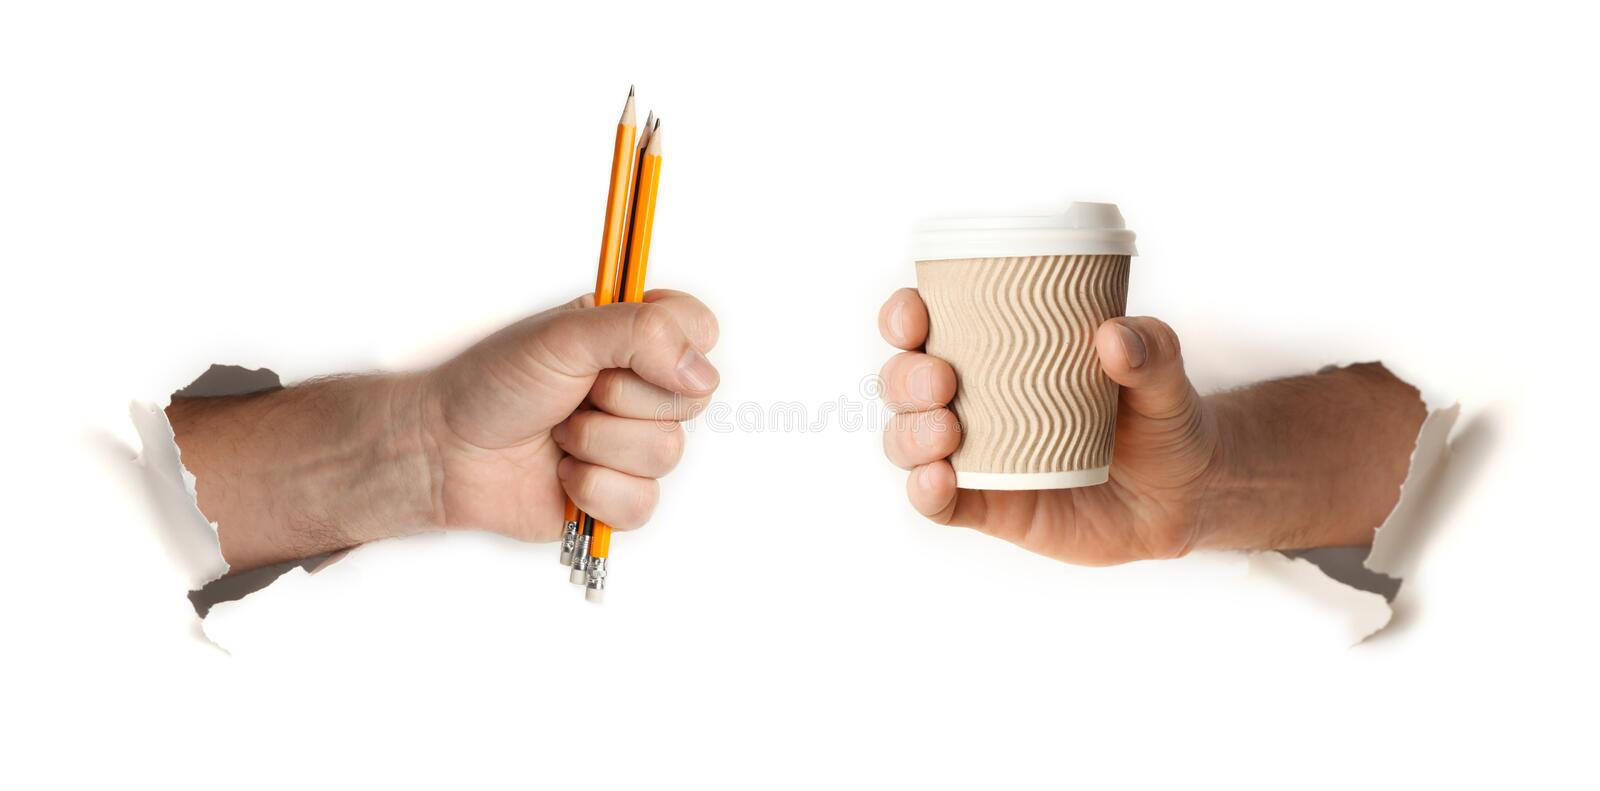 Pencils and cup of coffee in hand, concept of study and exam preparation royalty free stock photography